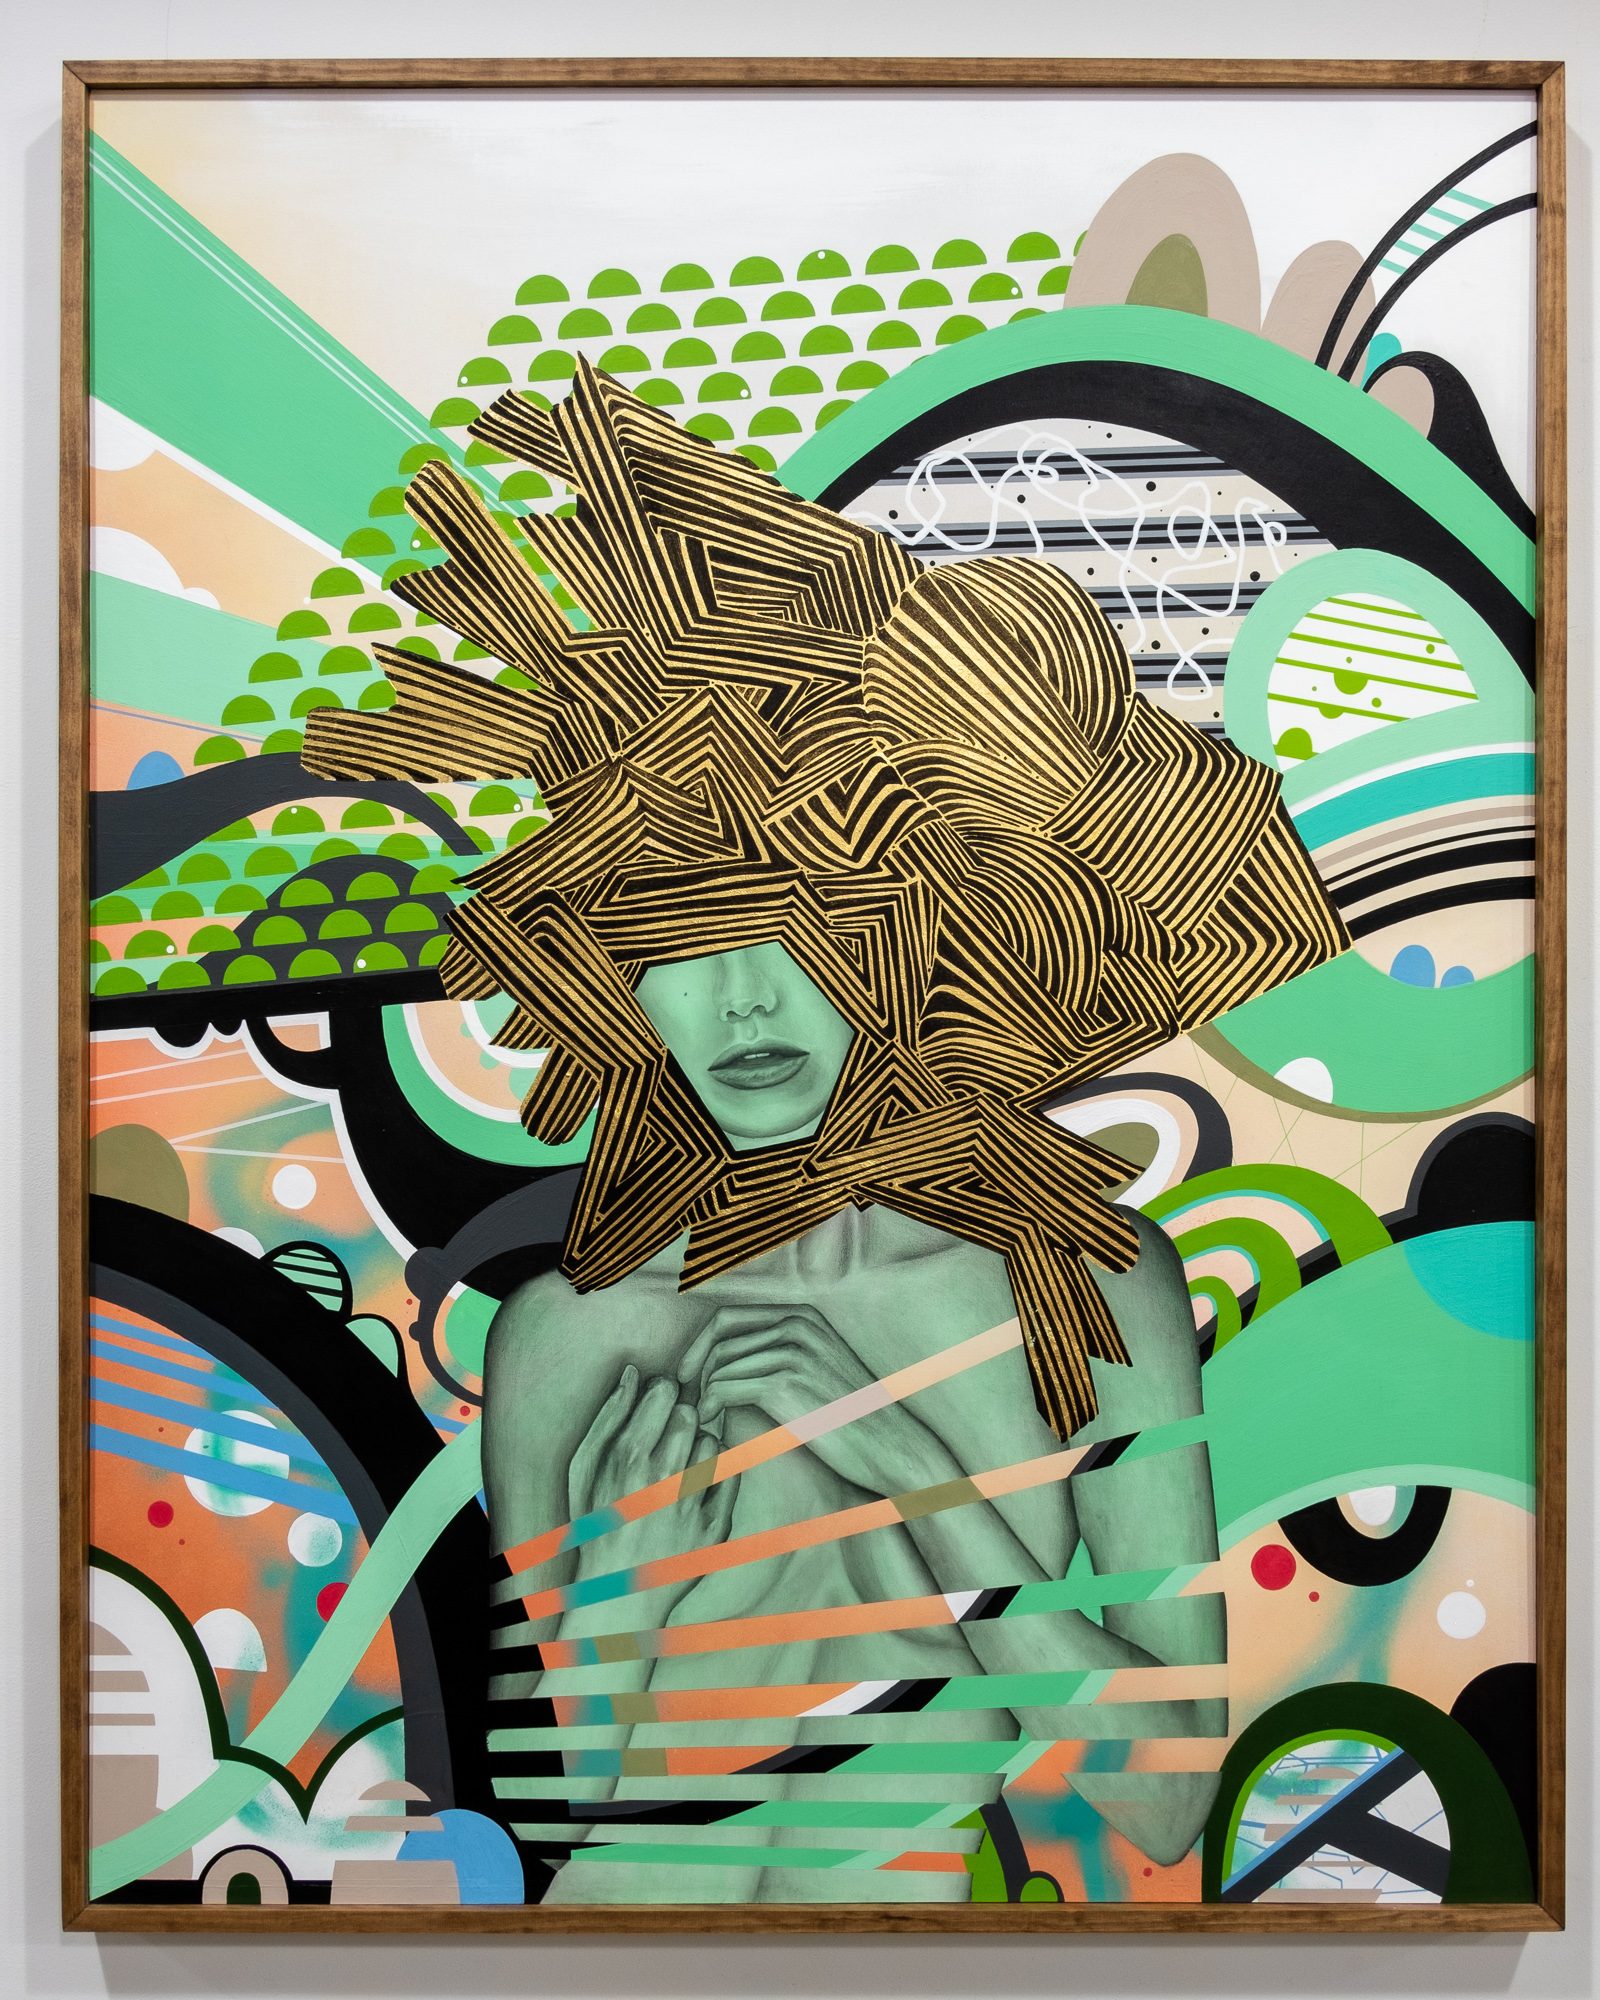 Lela Brunet and Phil Harris  The Flip Side  mixed media on wood panel  72 x 48 inches LBR 072G